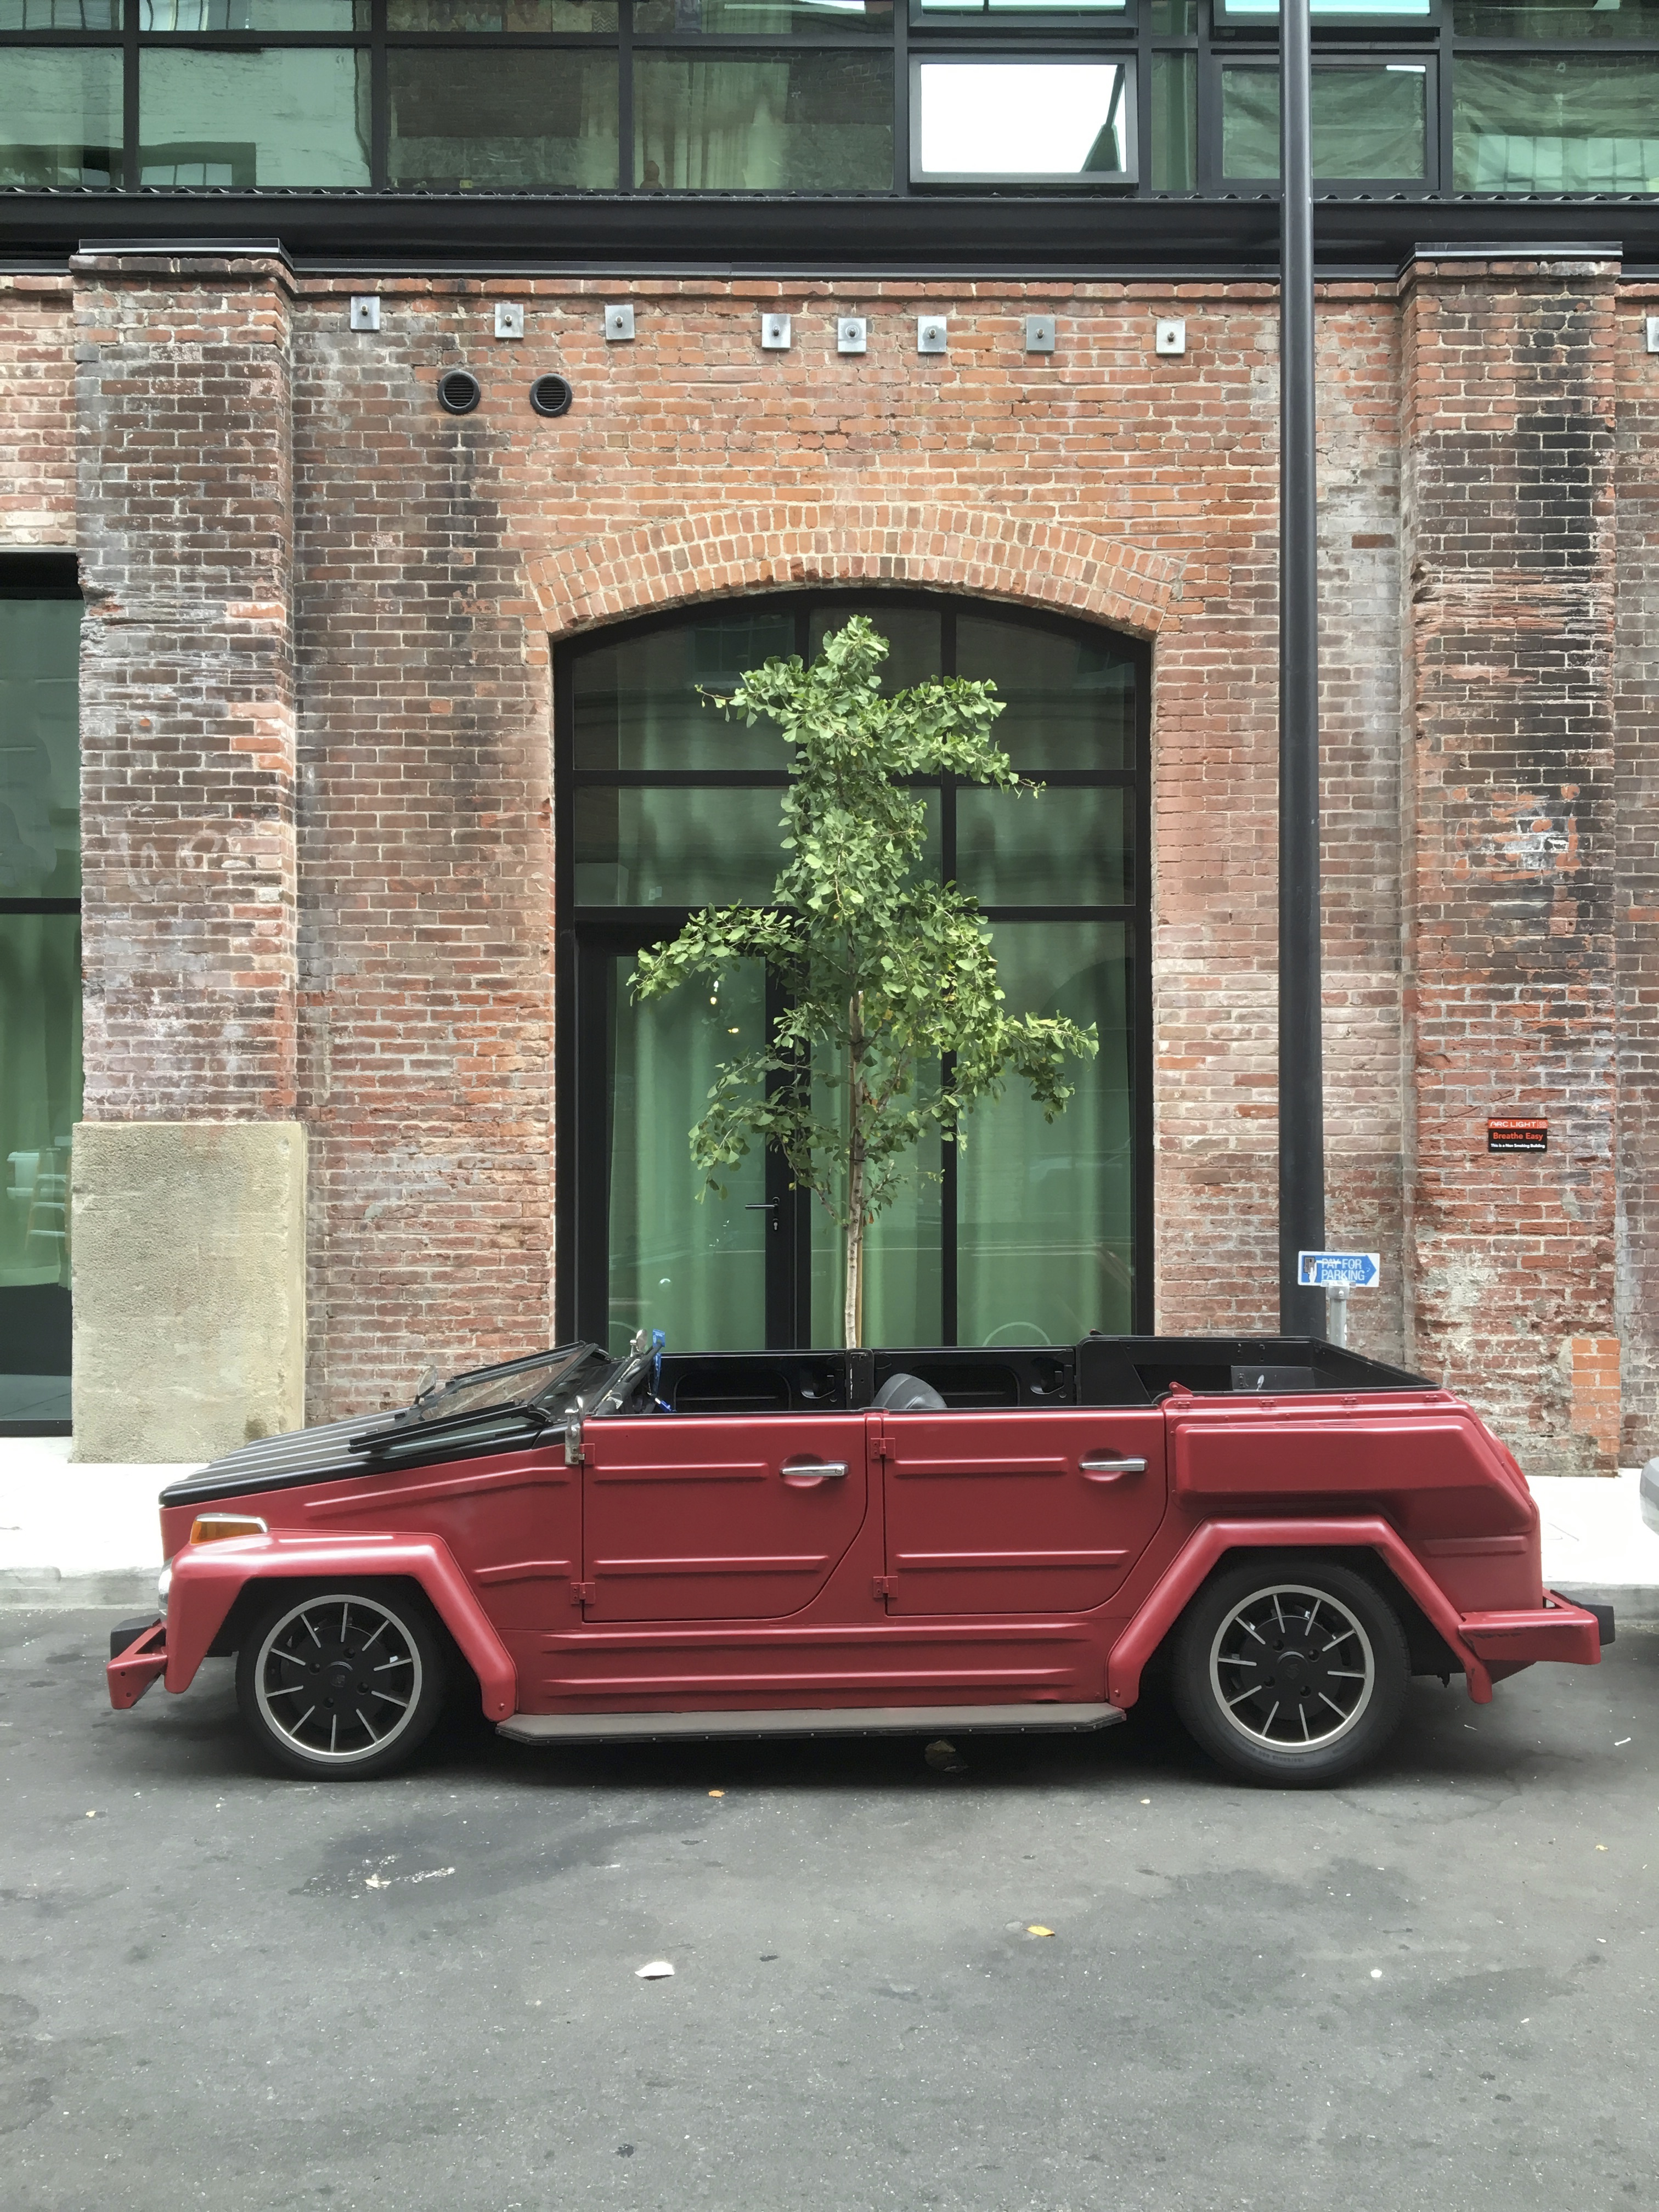 Volkswagen Thing Framed With Brick Building And Tree Behind